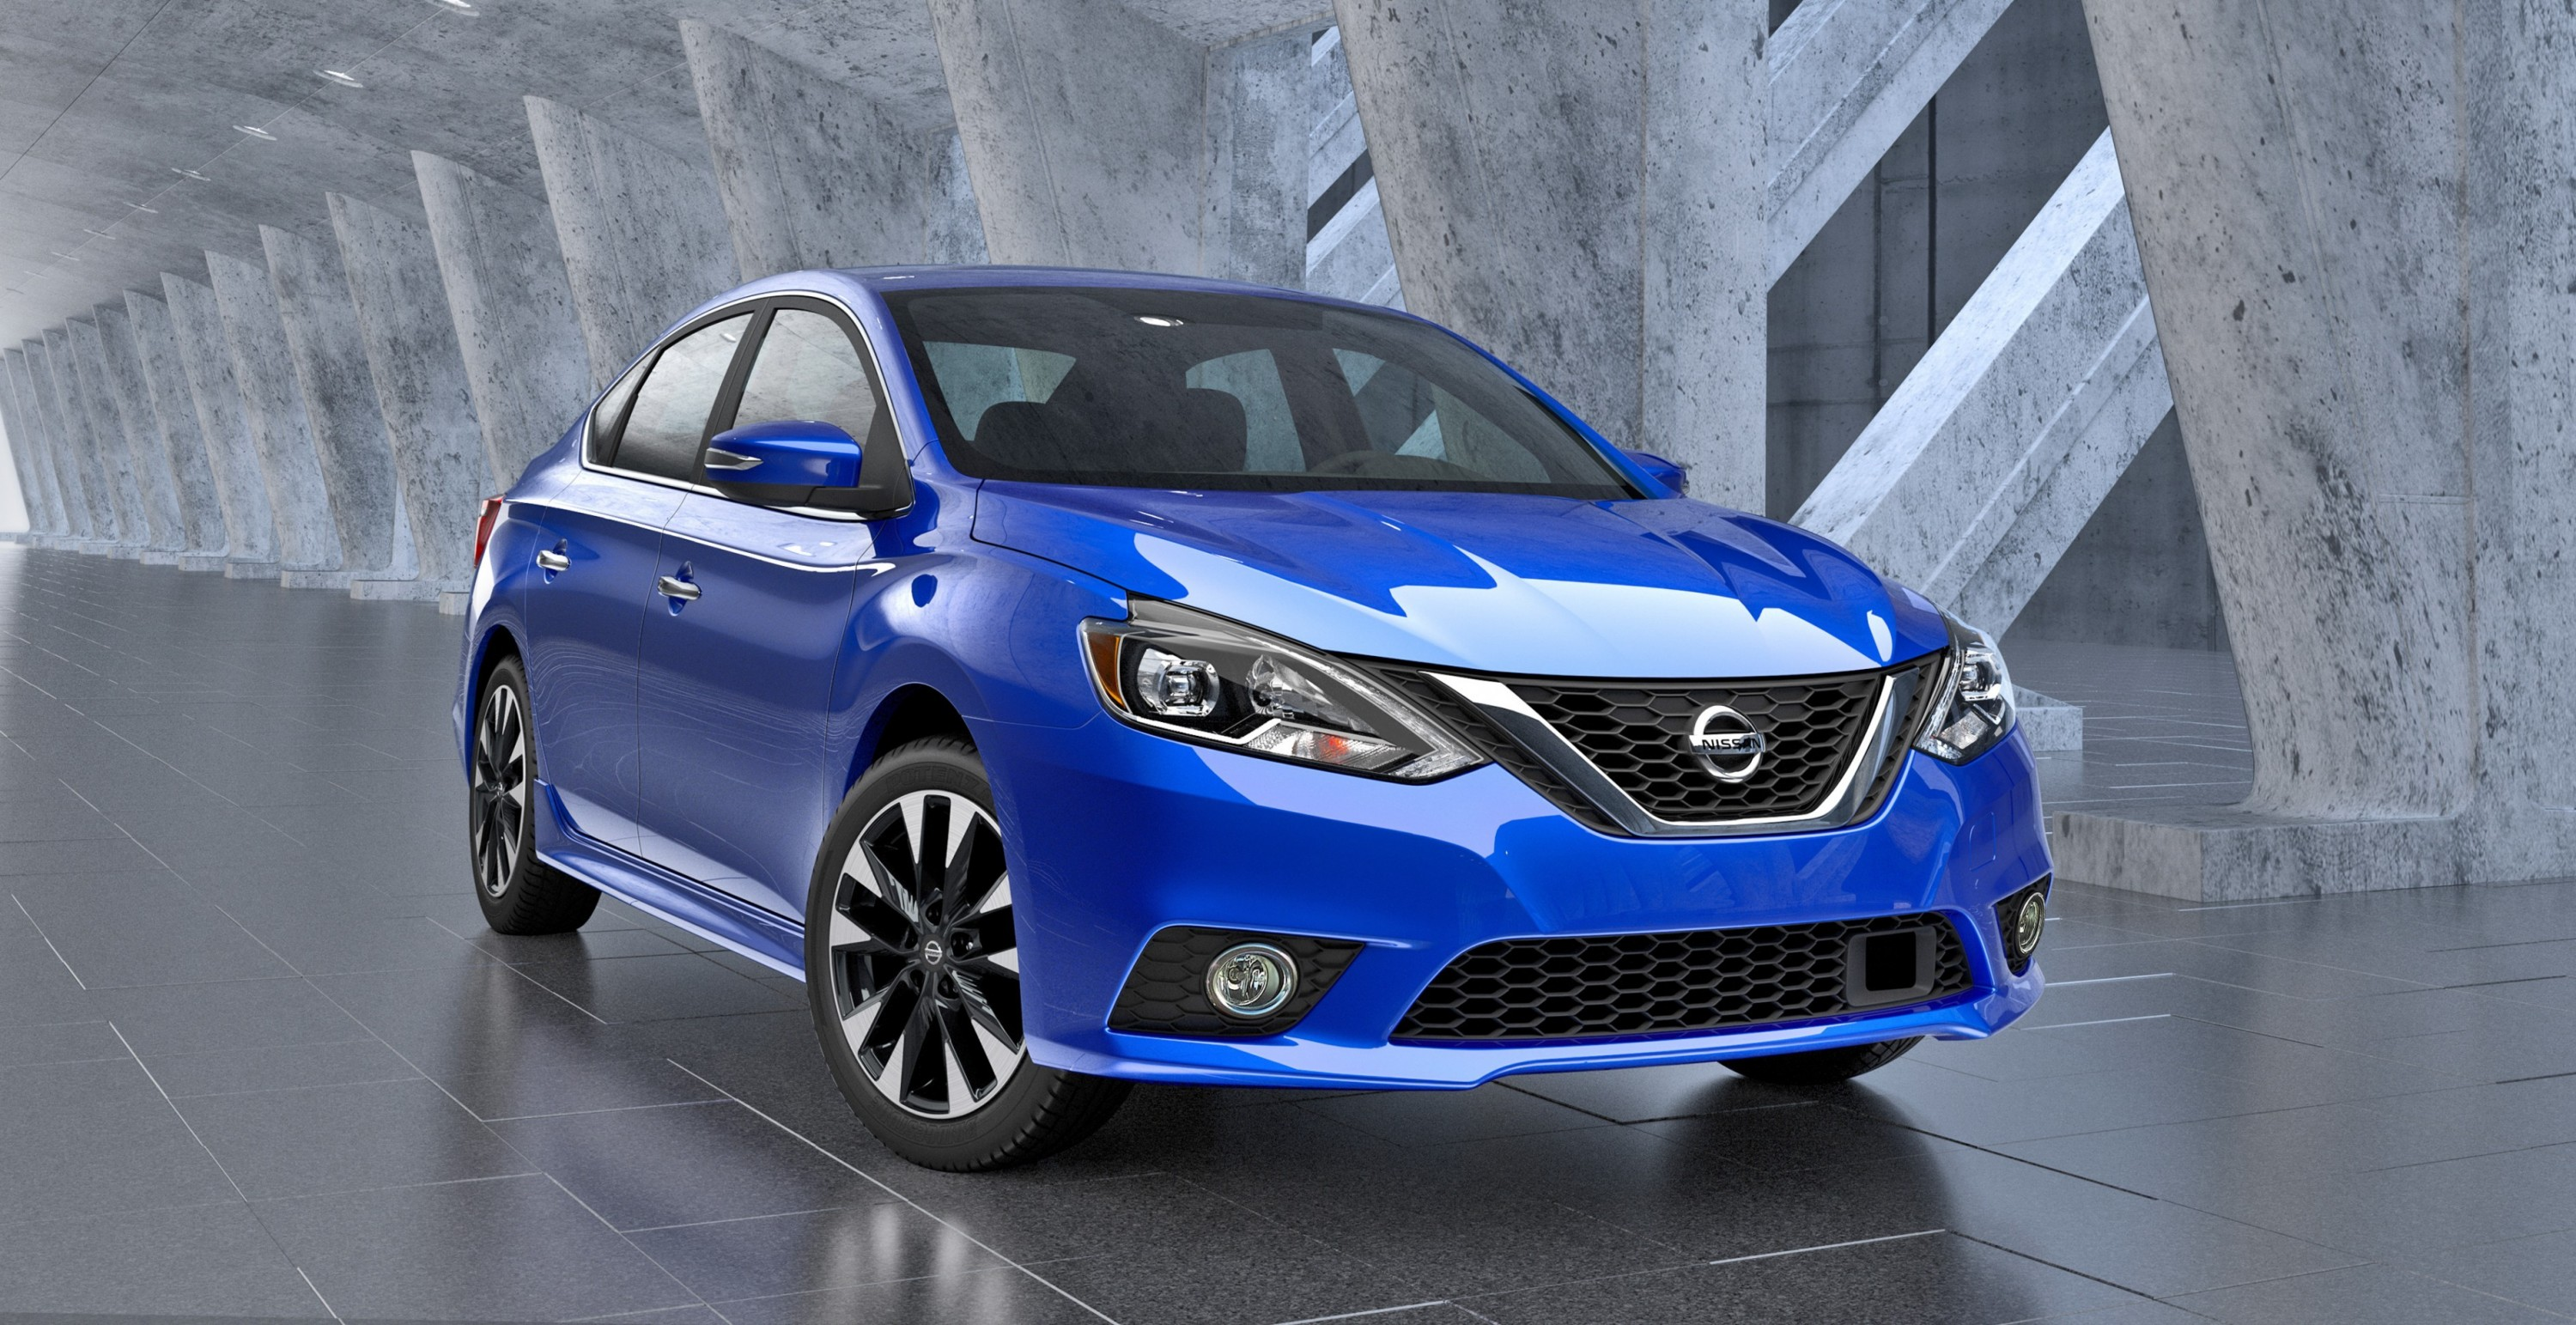 2016 Nissan Sentra Breaks Cover - New Face, Fresh Tech from $17k